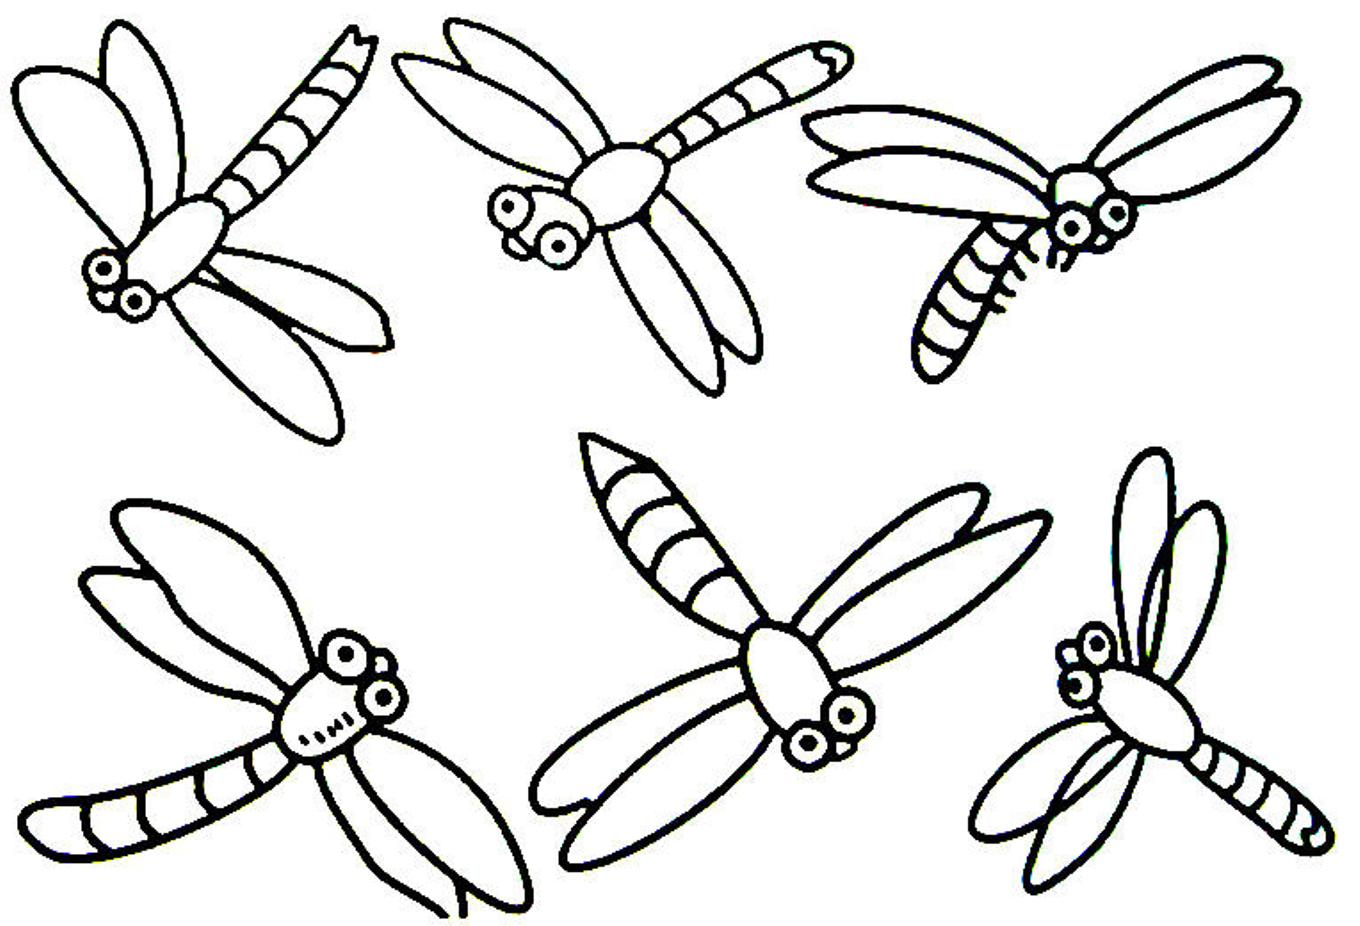 Dragonfly coloring #17, Download drawings